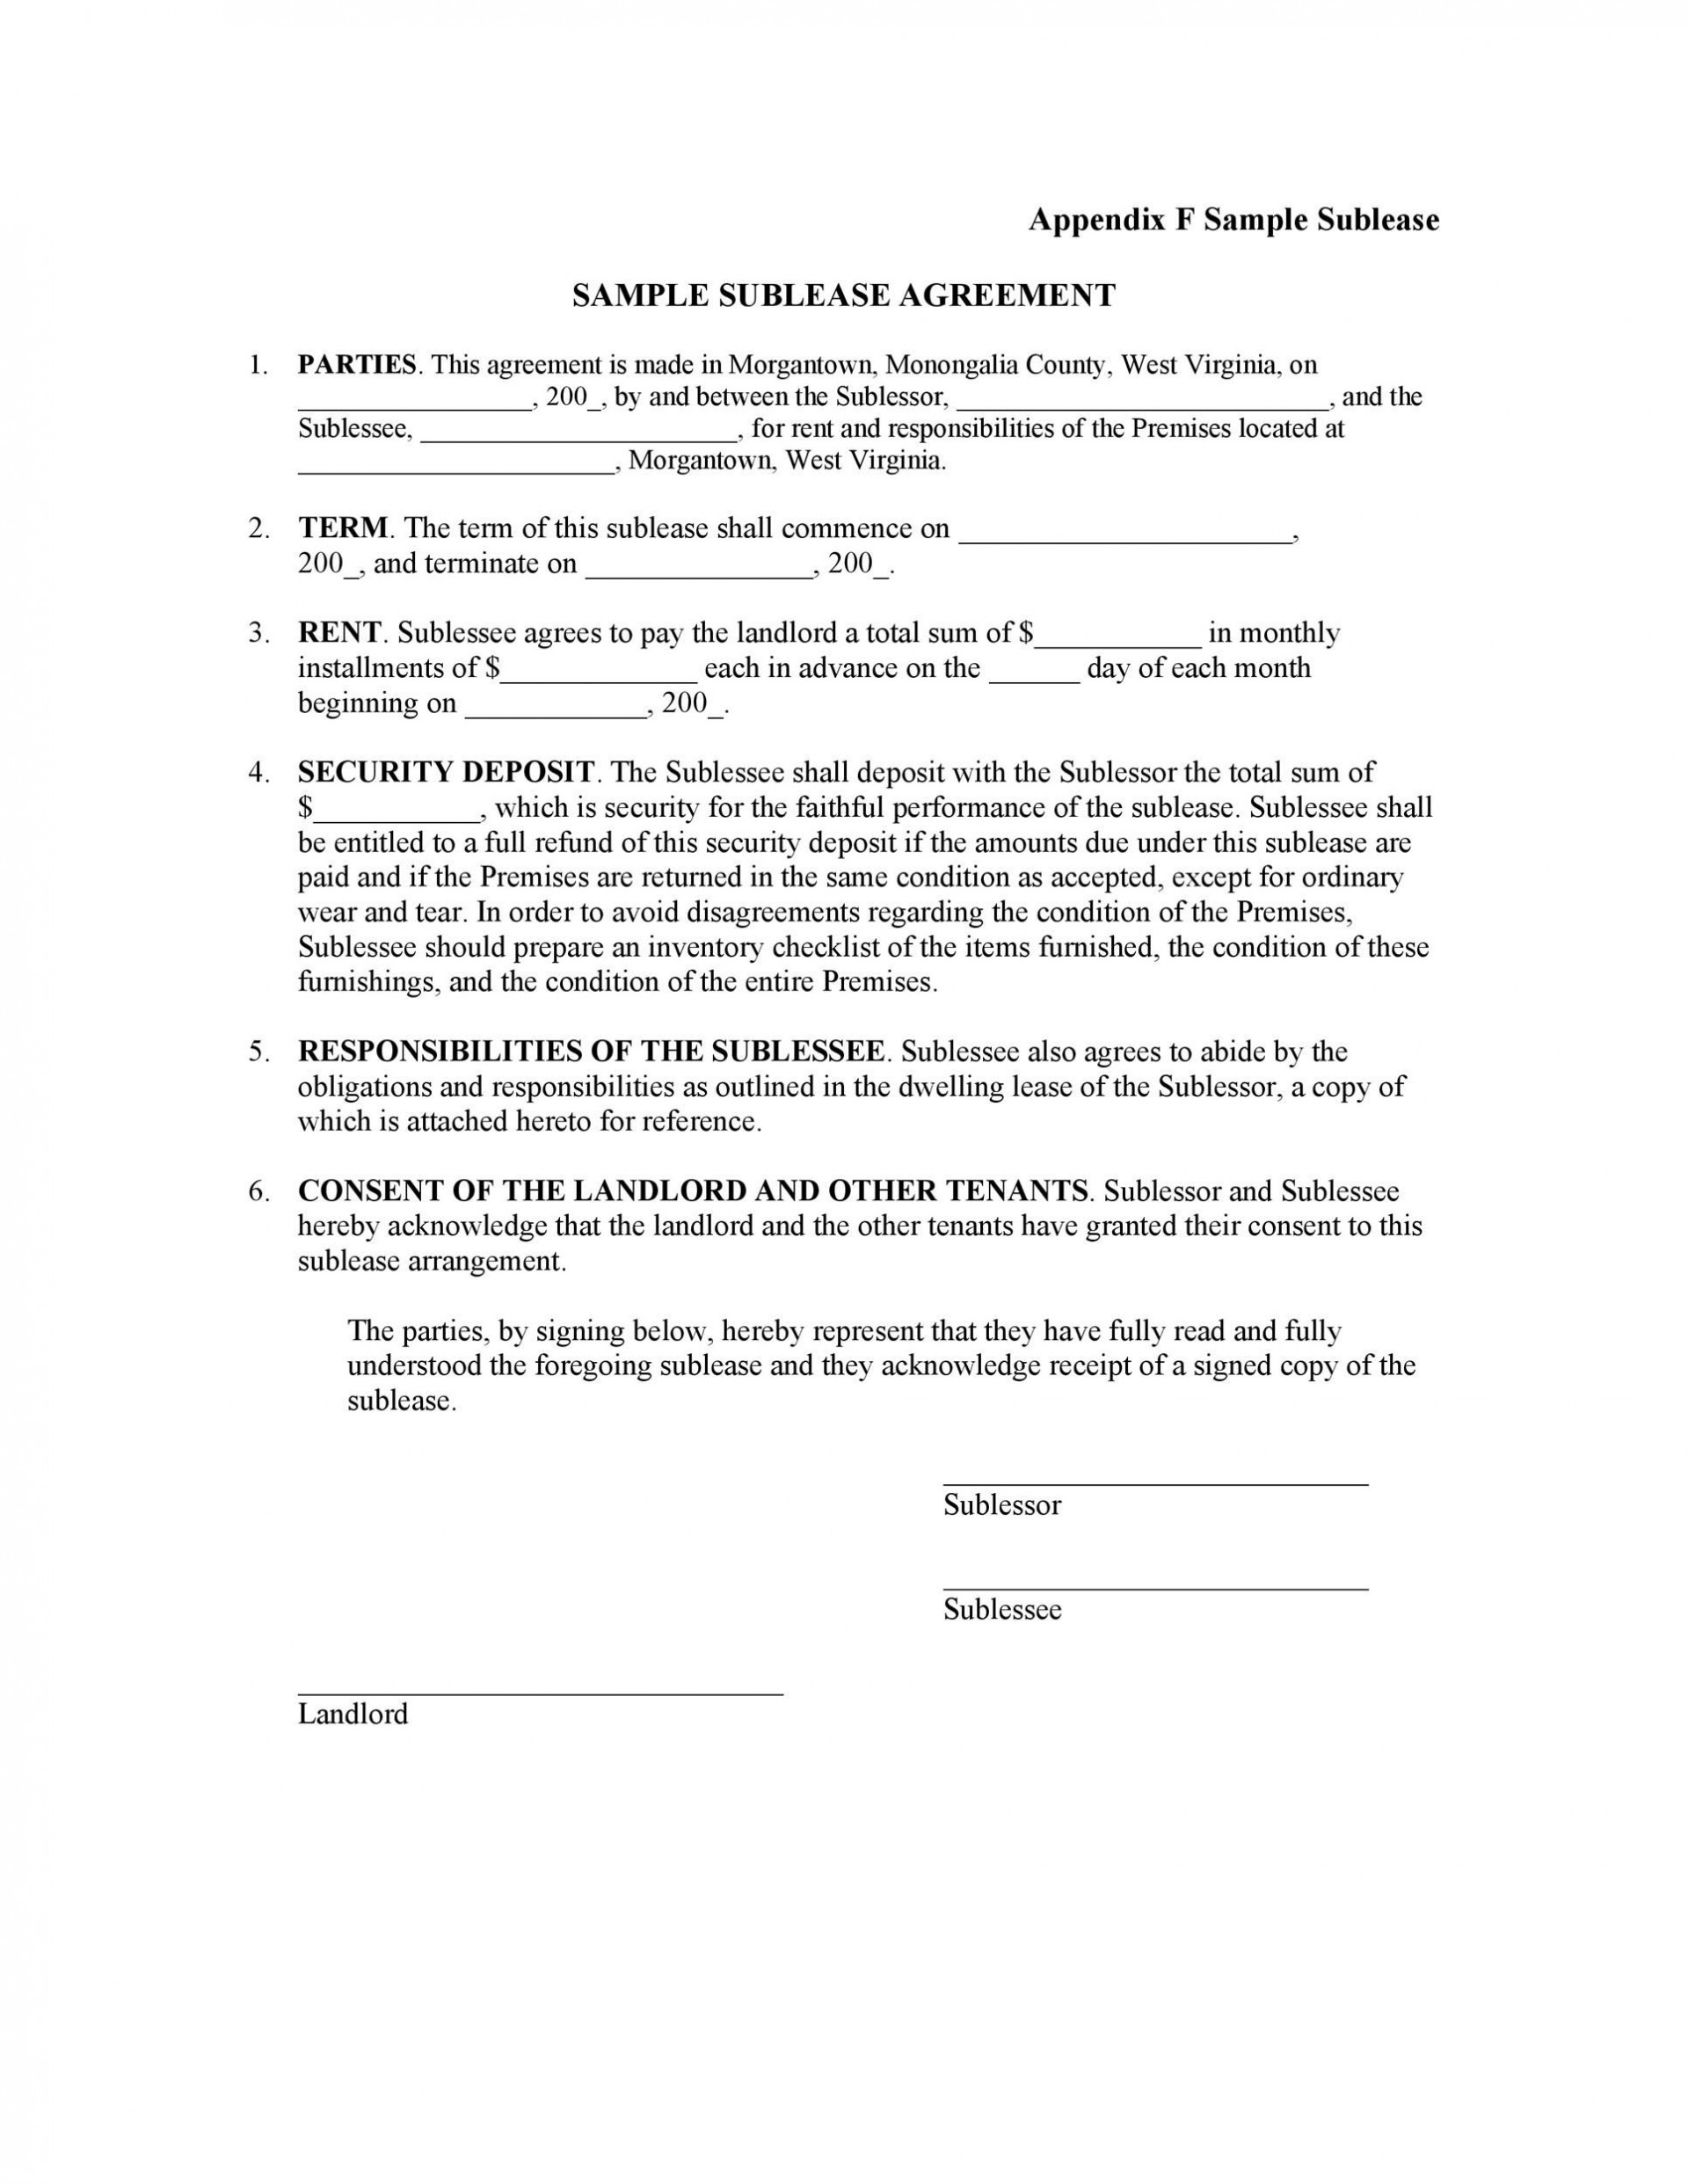 008 Impressive Free Sublease Agreement Template Pdf Image  Room Rental Car Form Residential Lease1920